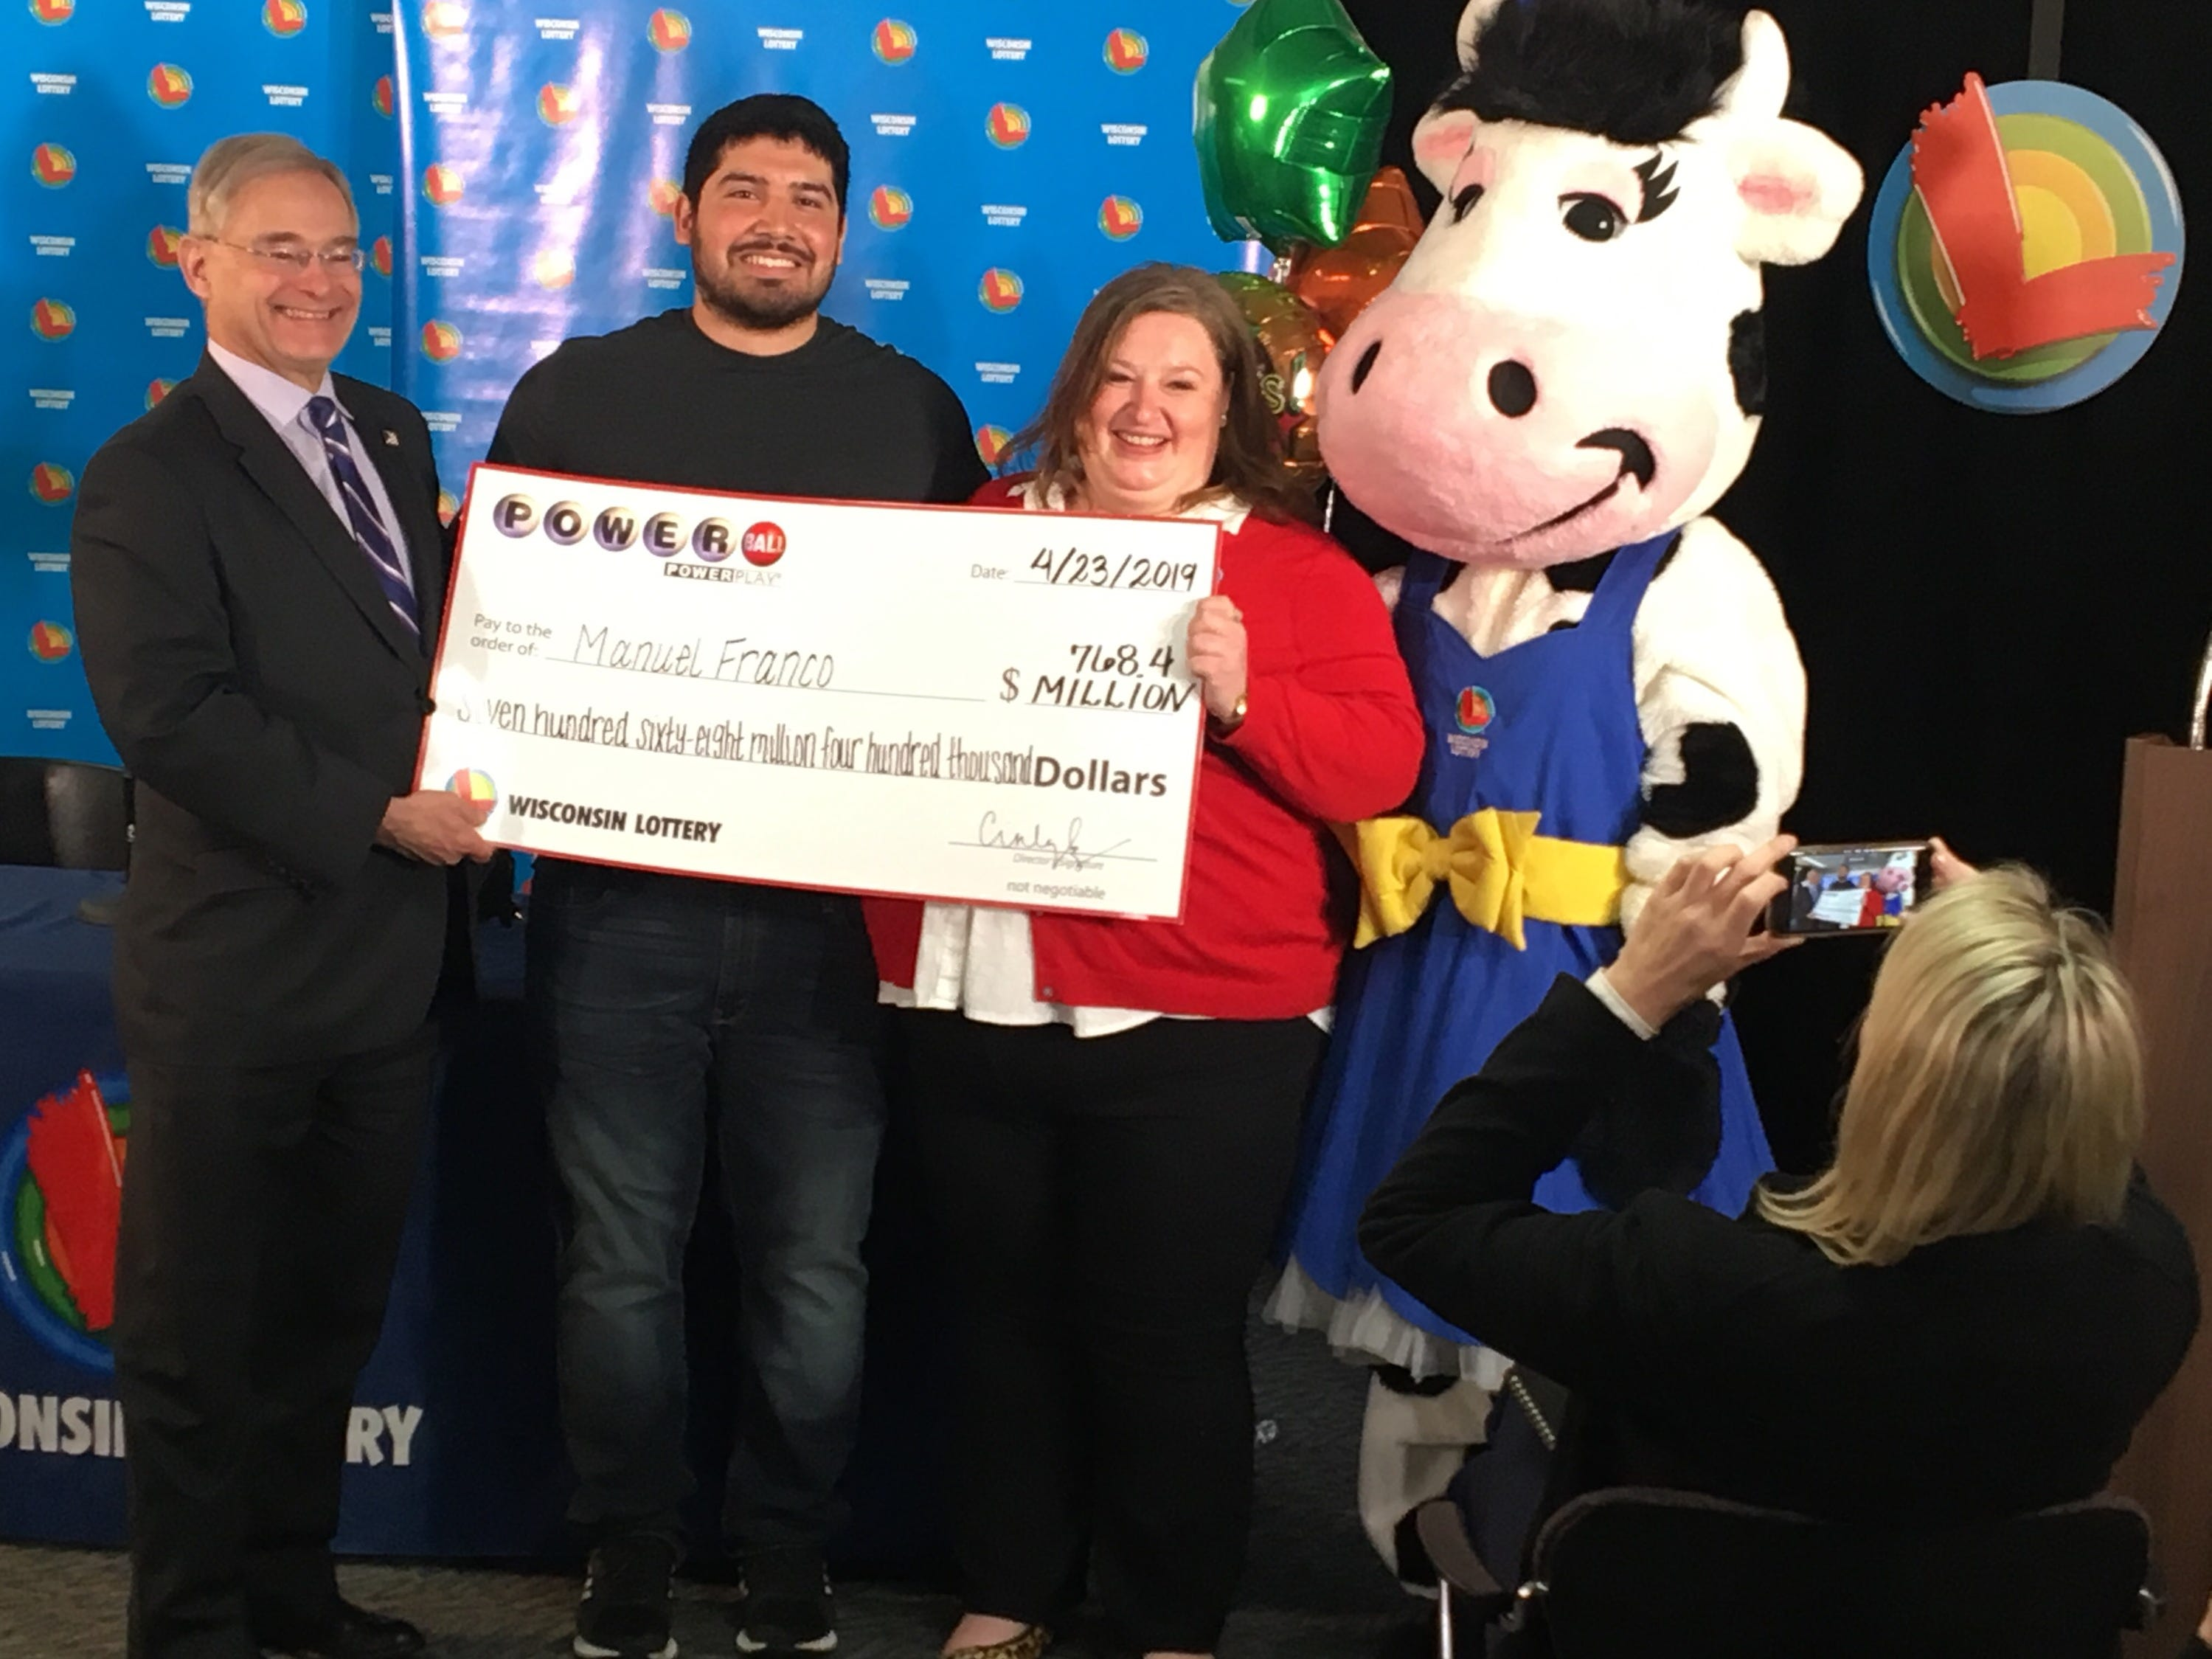 Manuel Franco, 24, of West Allis, is the winner of the $768.4 million Powerball jackpot. Franco was identified early Tuesday afternoon at the state lottery headquarters. With him are Wisconsin Department of Revenue Secretary Peter Barca, Wisconsin Lottery Director Cindy Polzin and Moola, the lottery mascot.